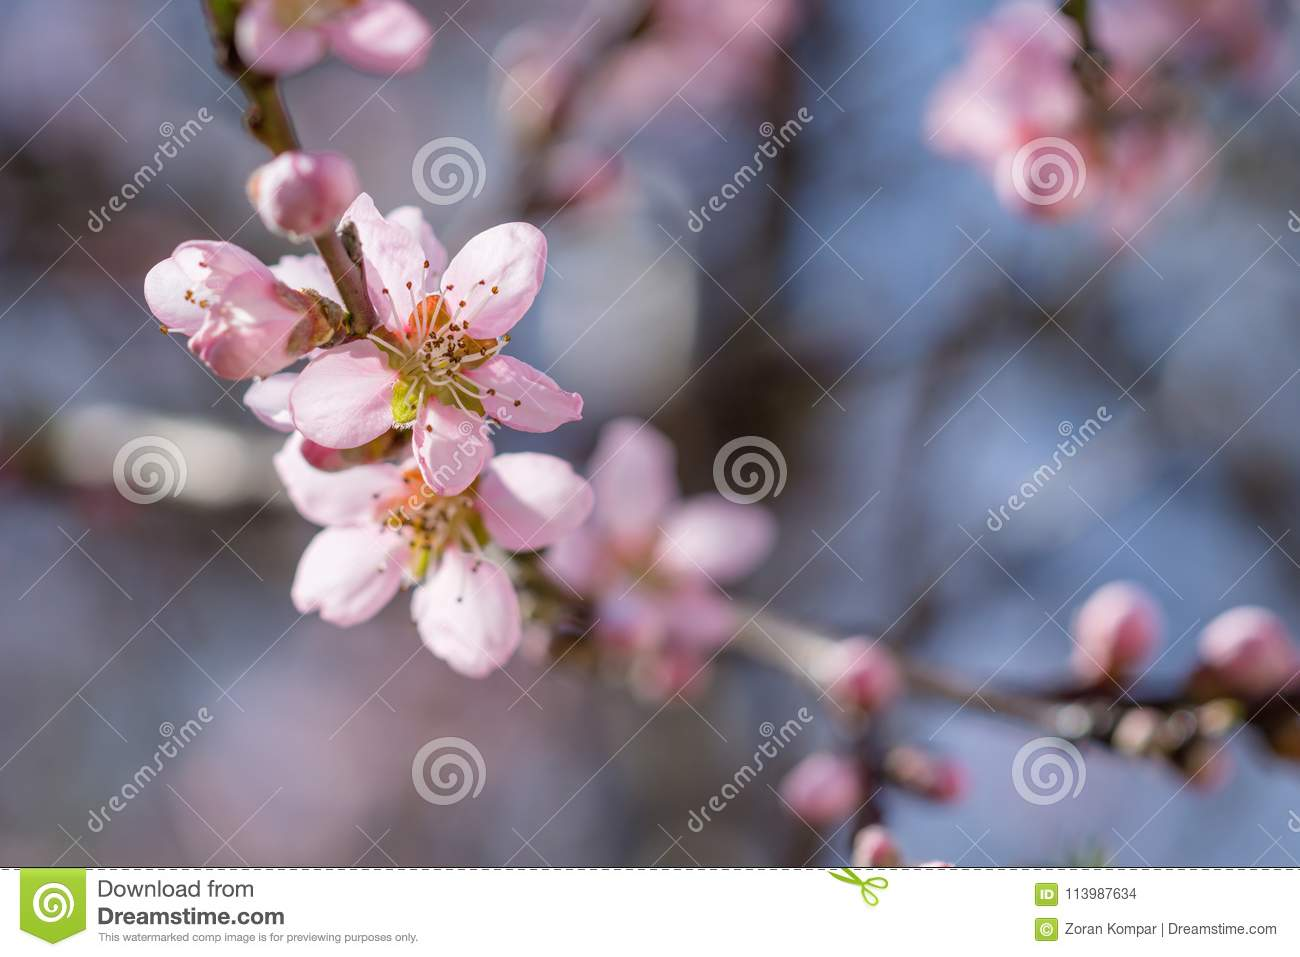 Blooming beautiful pink peach flowers on branches. April spring